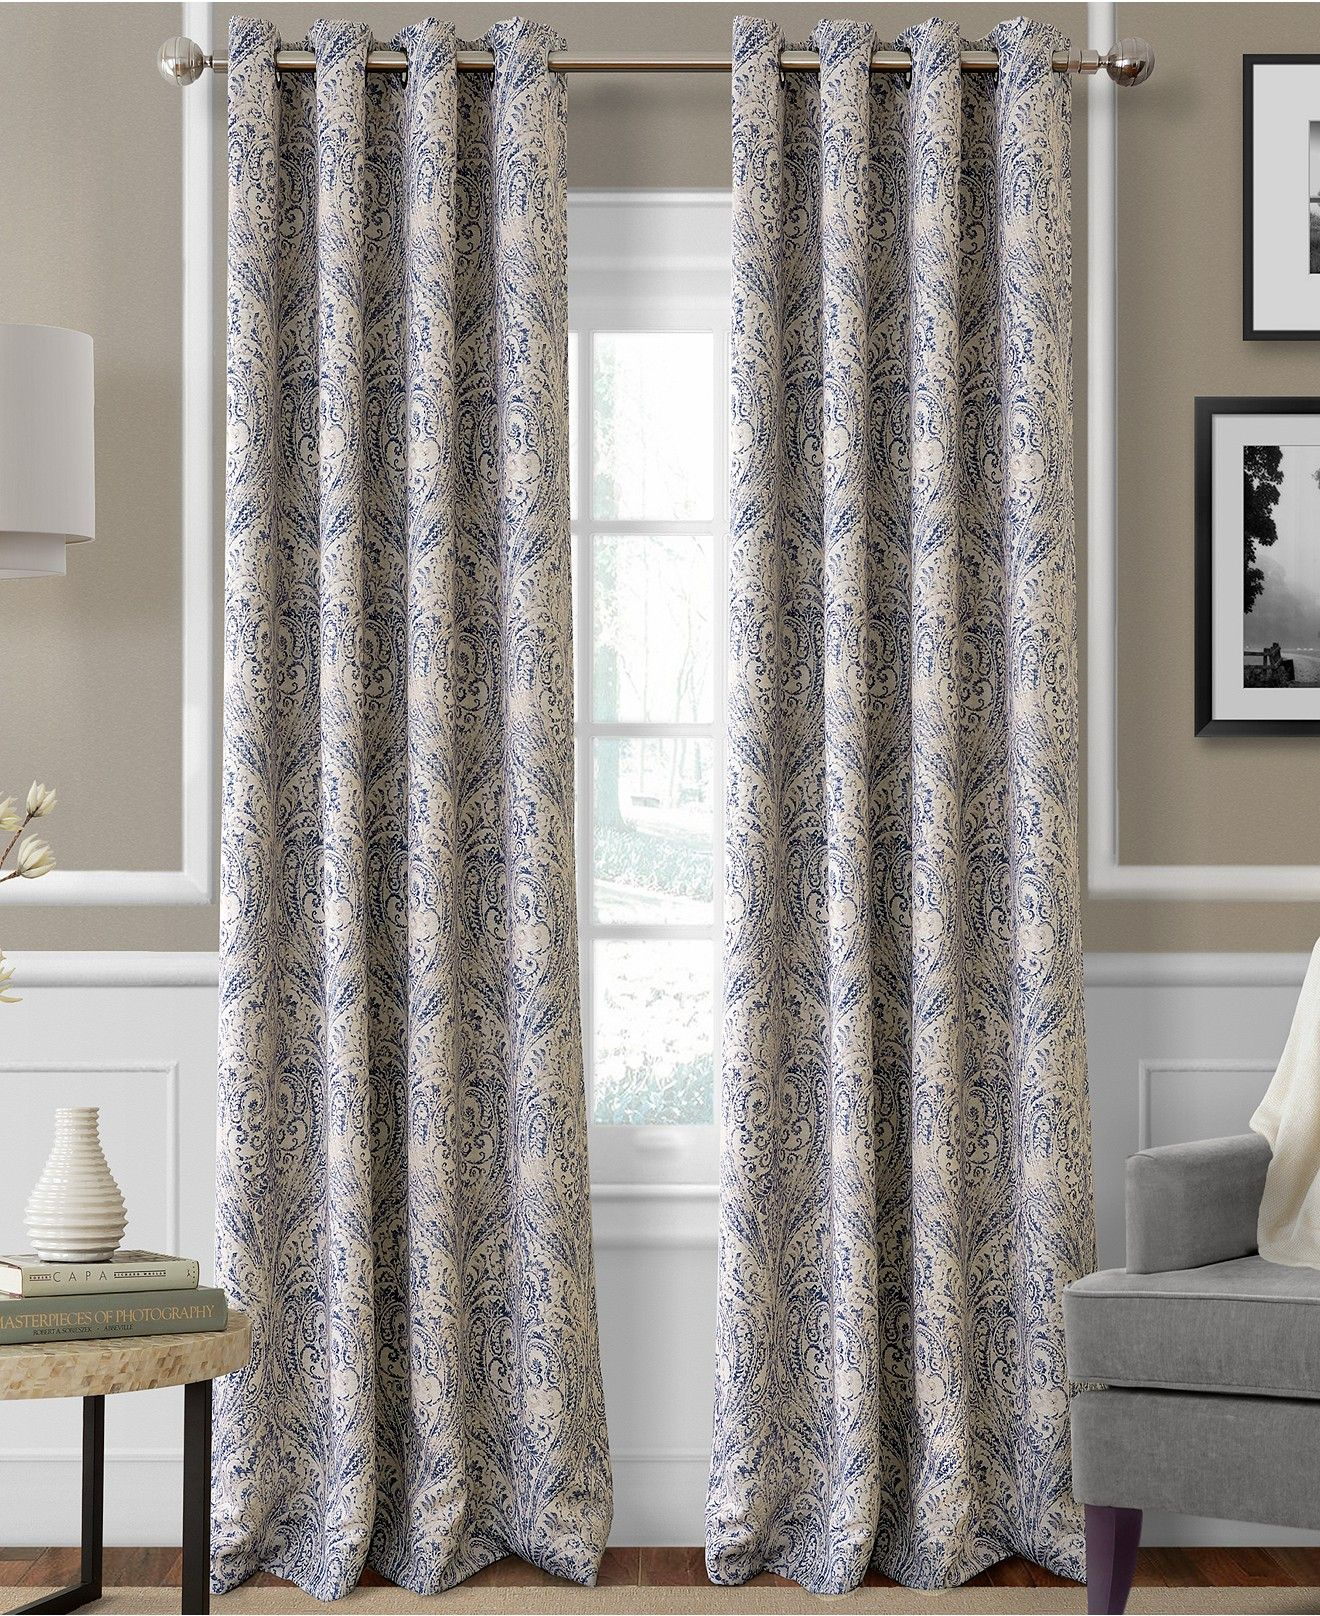 Julianne Blackout Grommet Panel Collection   Home Decor With Regard To Sunsmart Dahlia Paisley Printed Total Blackout Single Window Curtain Panels (View 13 of 30)